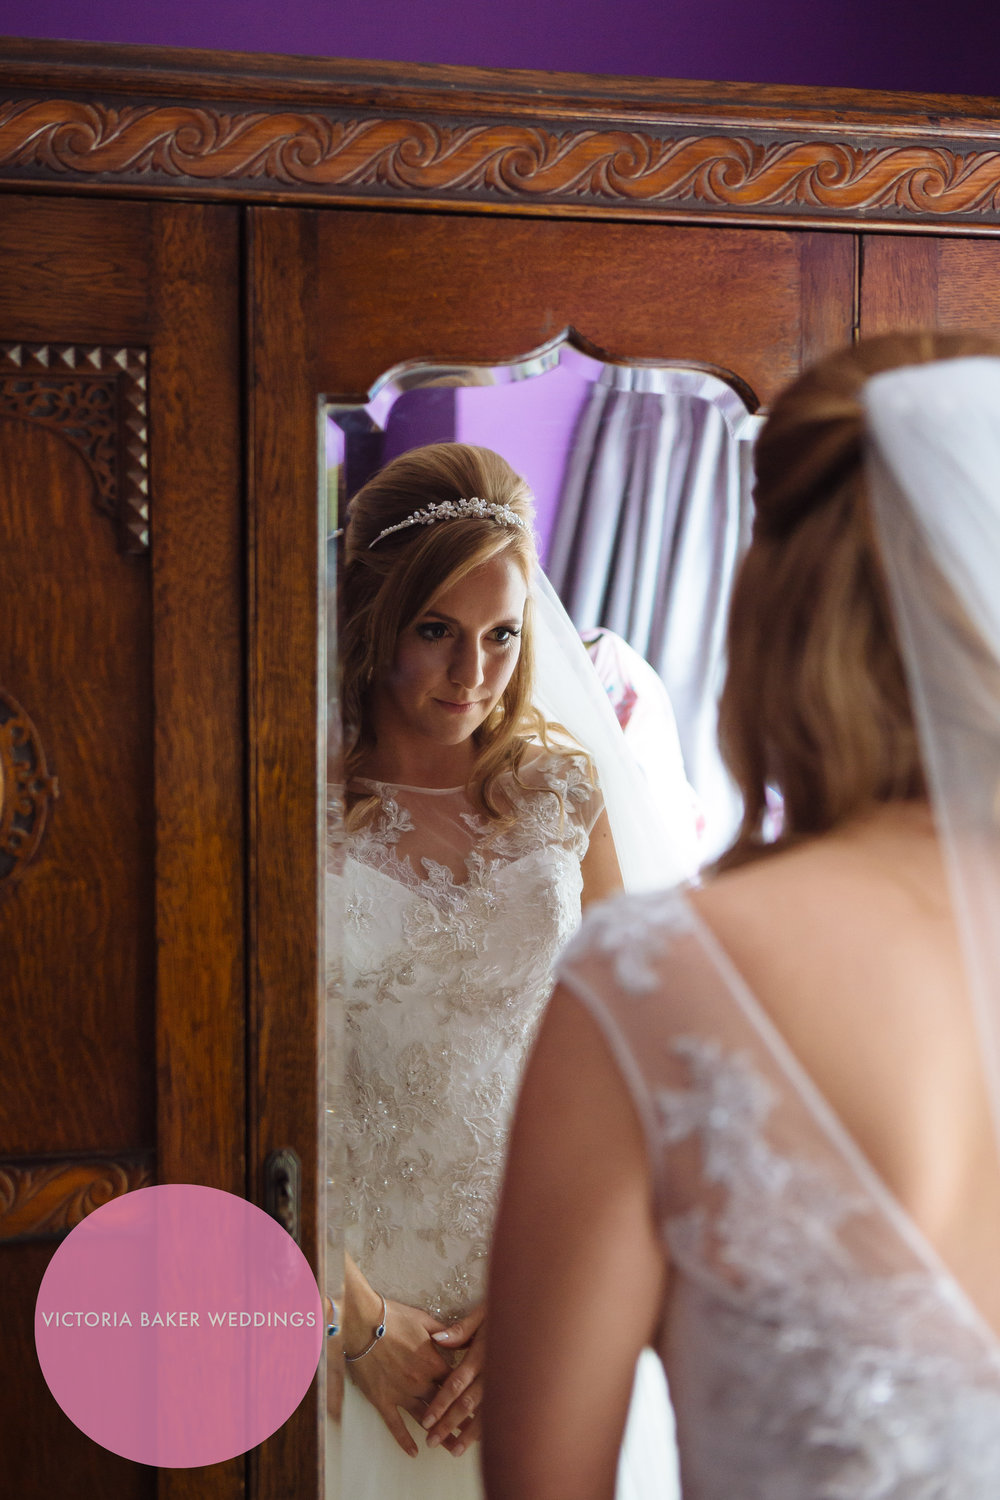 Best Wedding Photographs of 2016 - Bride in mirror